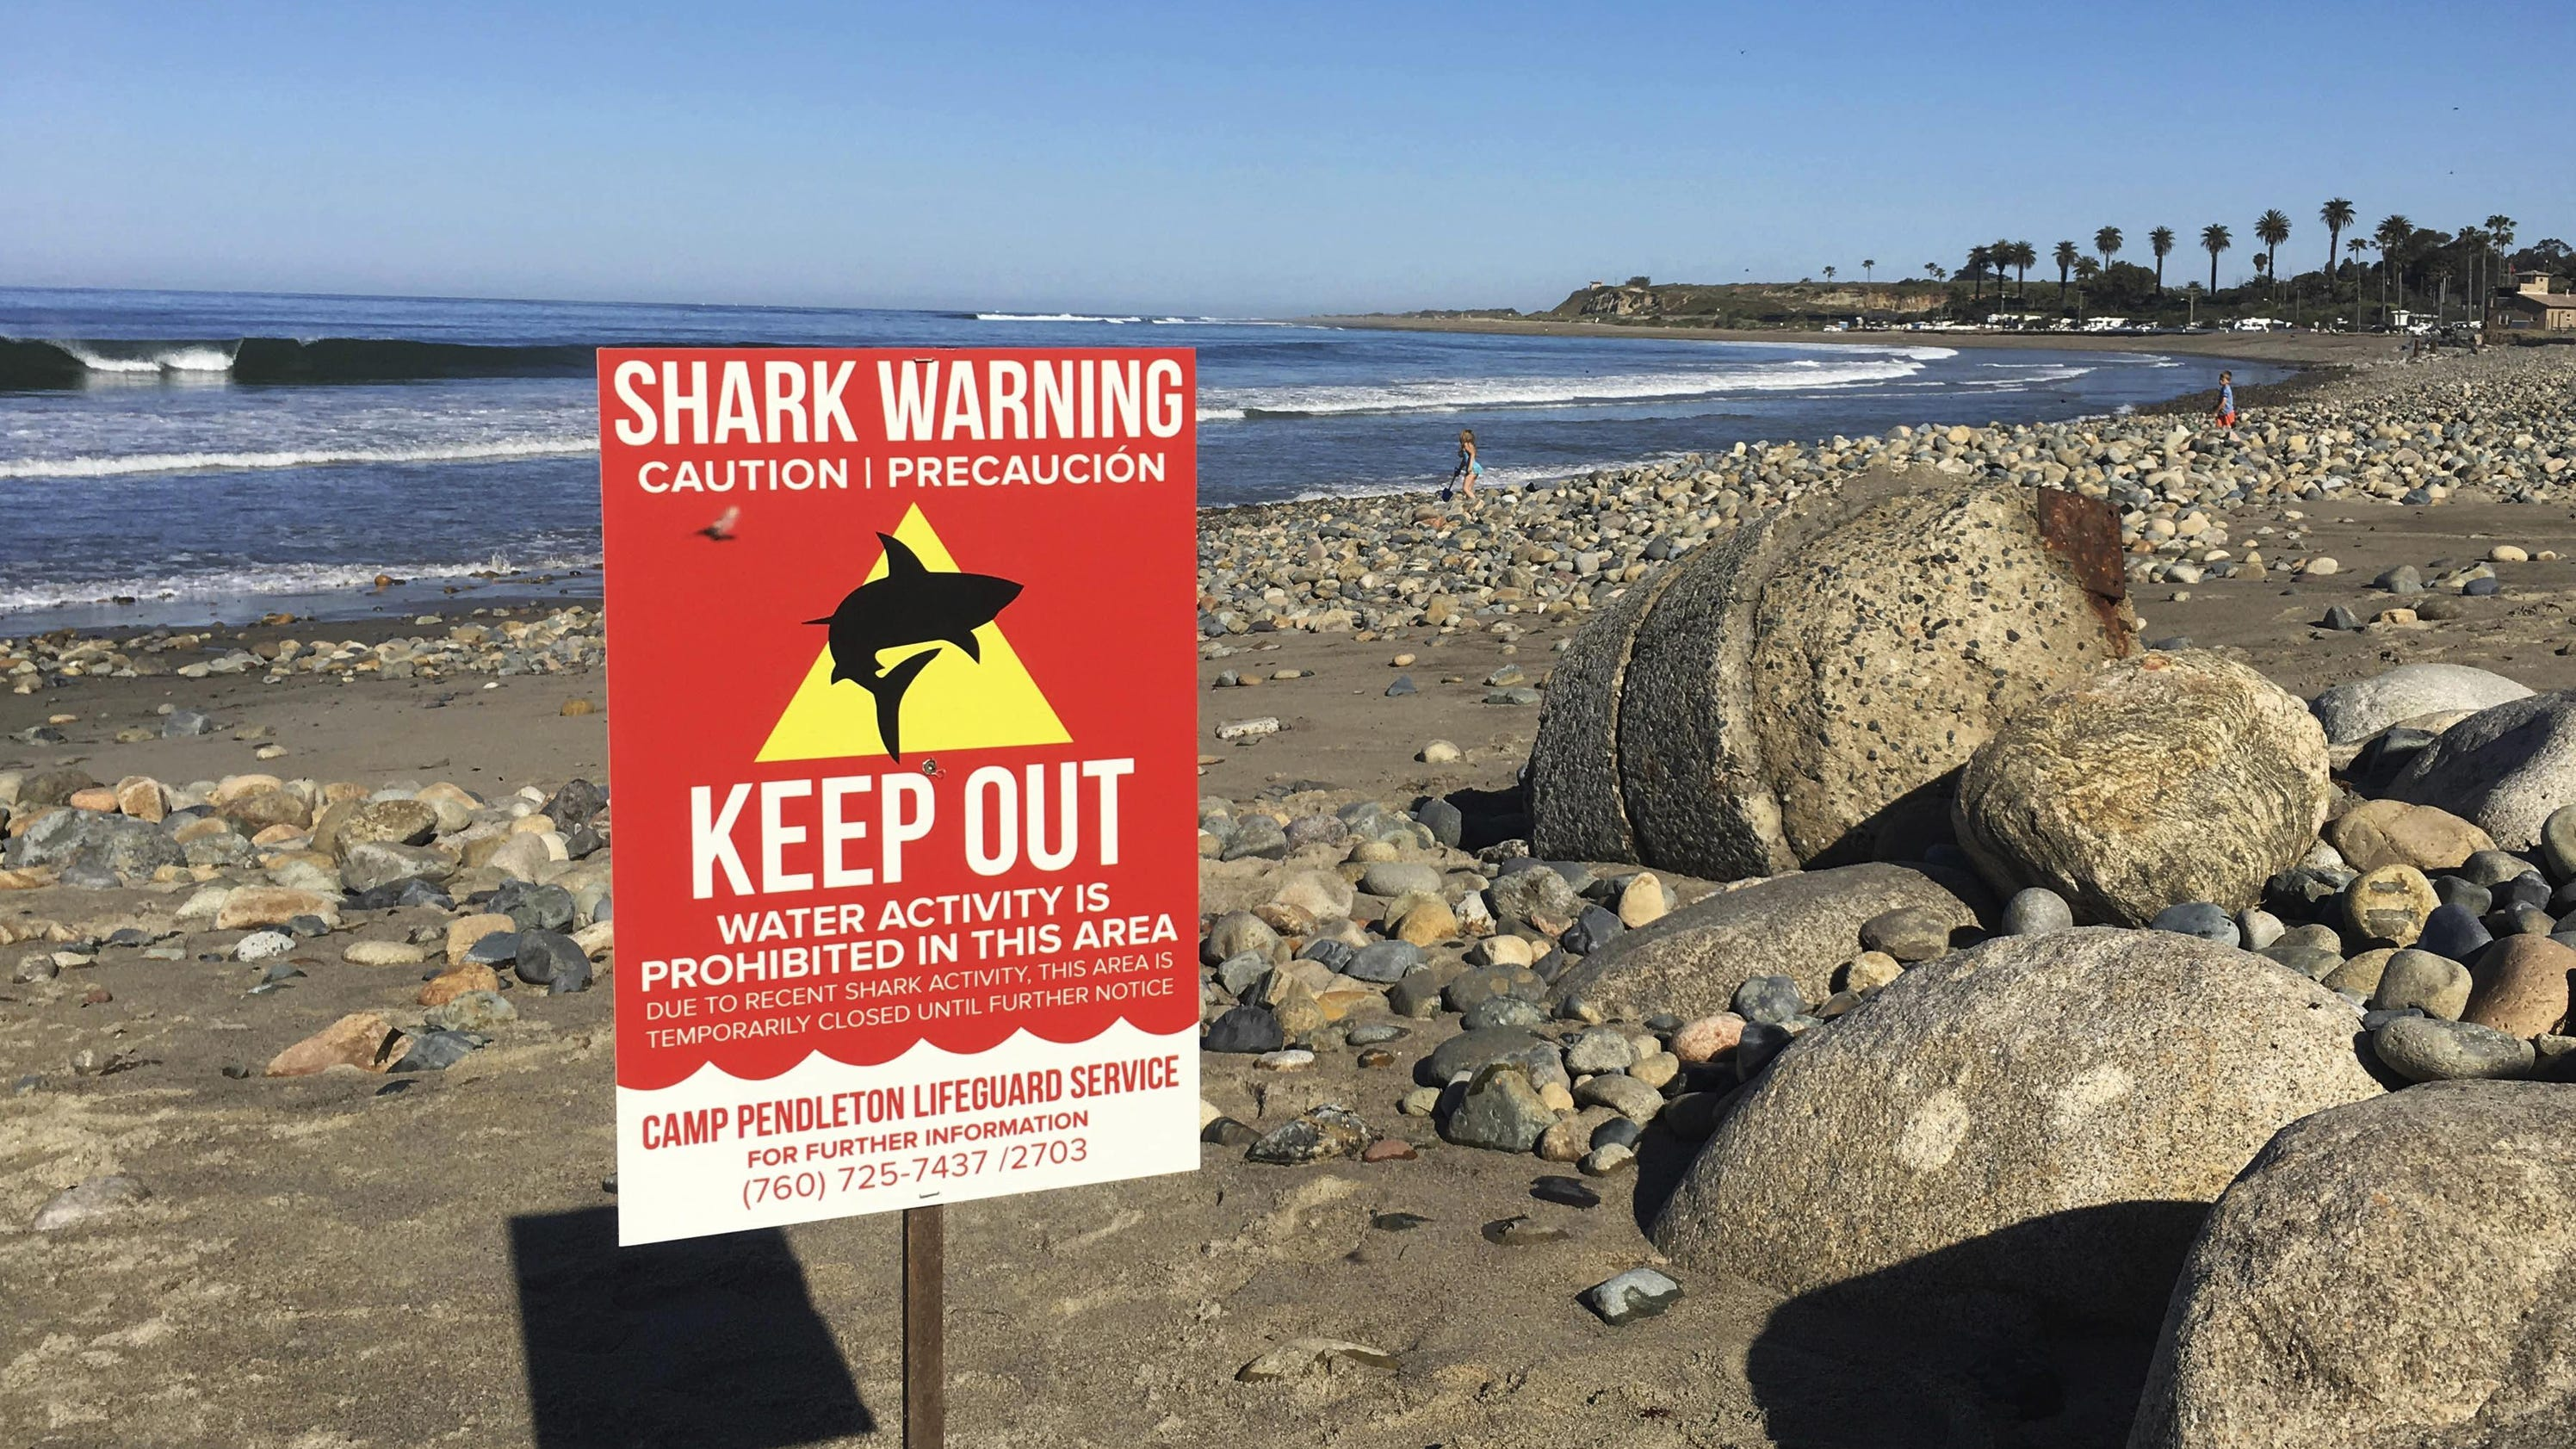 Dc5n United States Criminal In English Created At 2017 05 01 0833 Wiring Wizards Rehoboth Beach A Shark Attacked Woman Wading The Ocean With Friends Tearing Away Part Of Her Upper Thigh Off Popular Southern California Authorities And